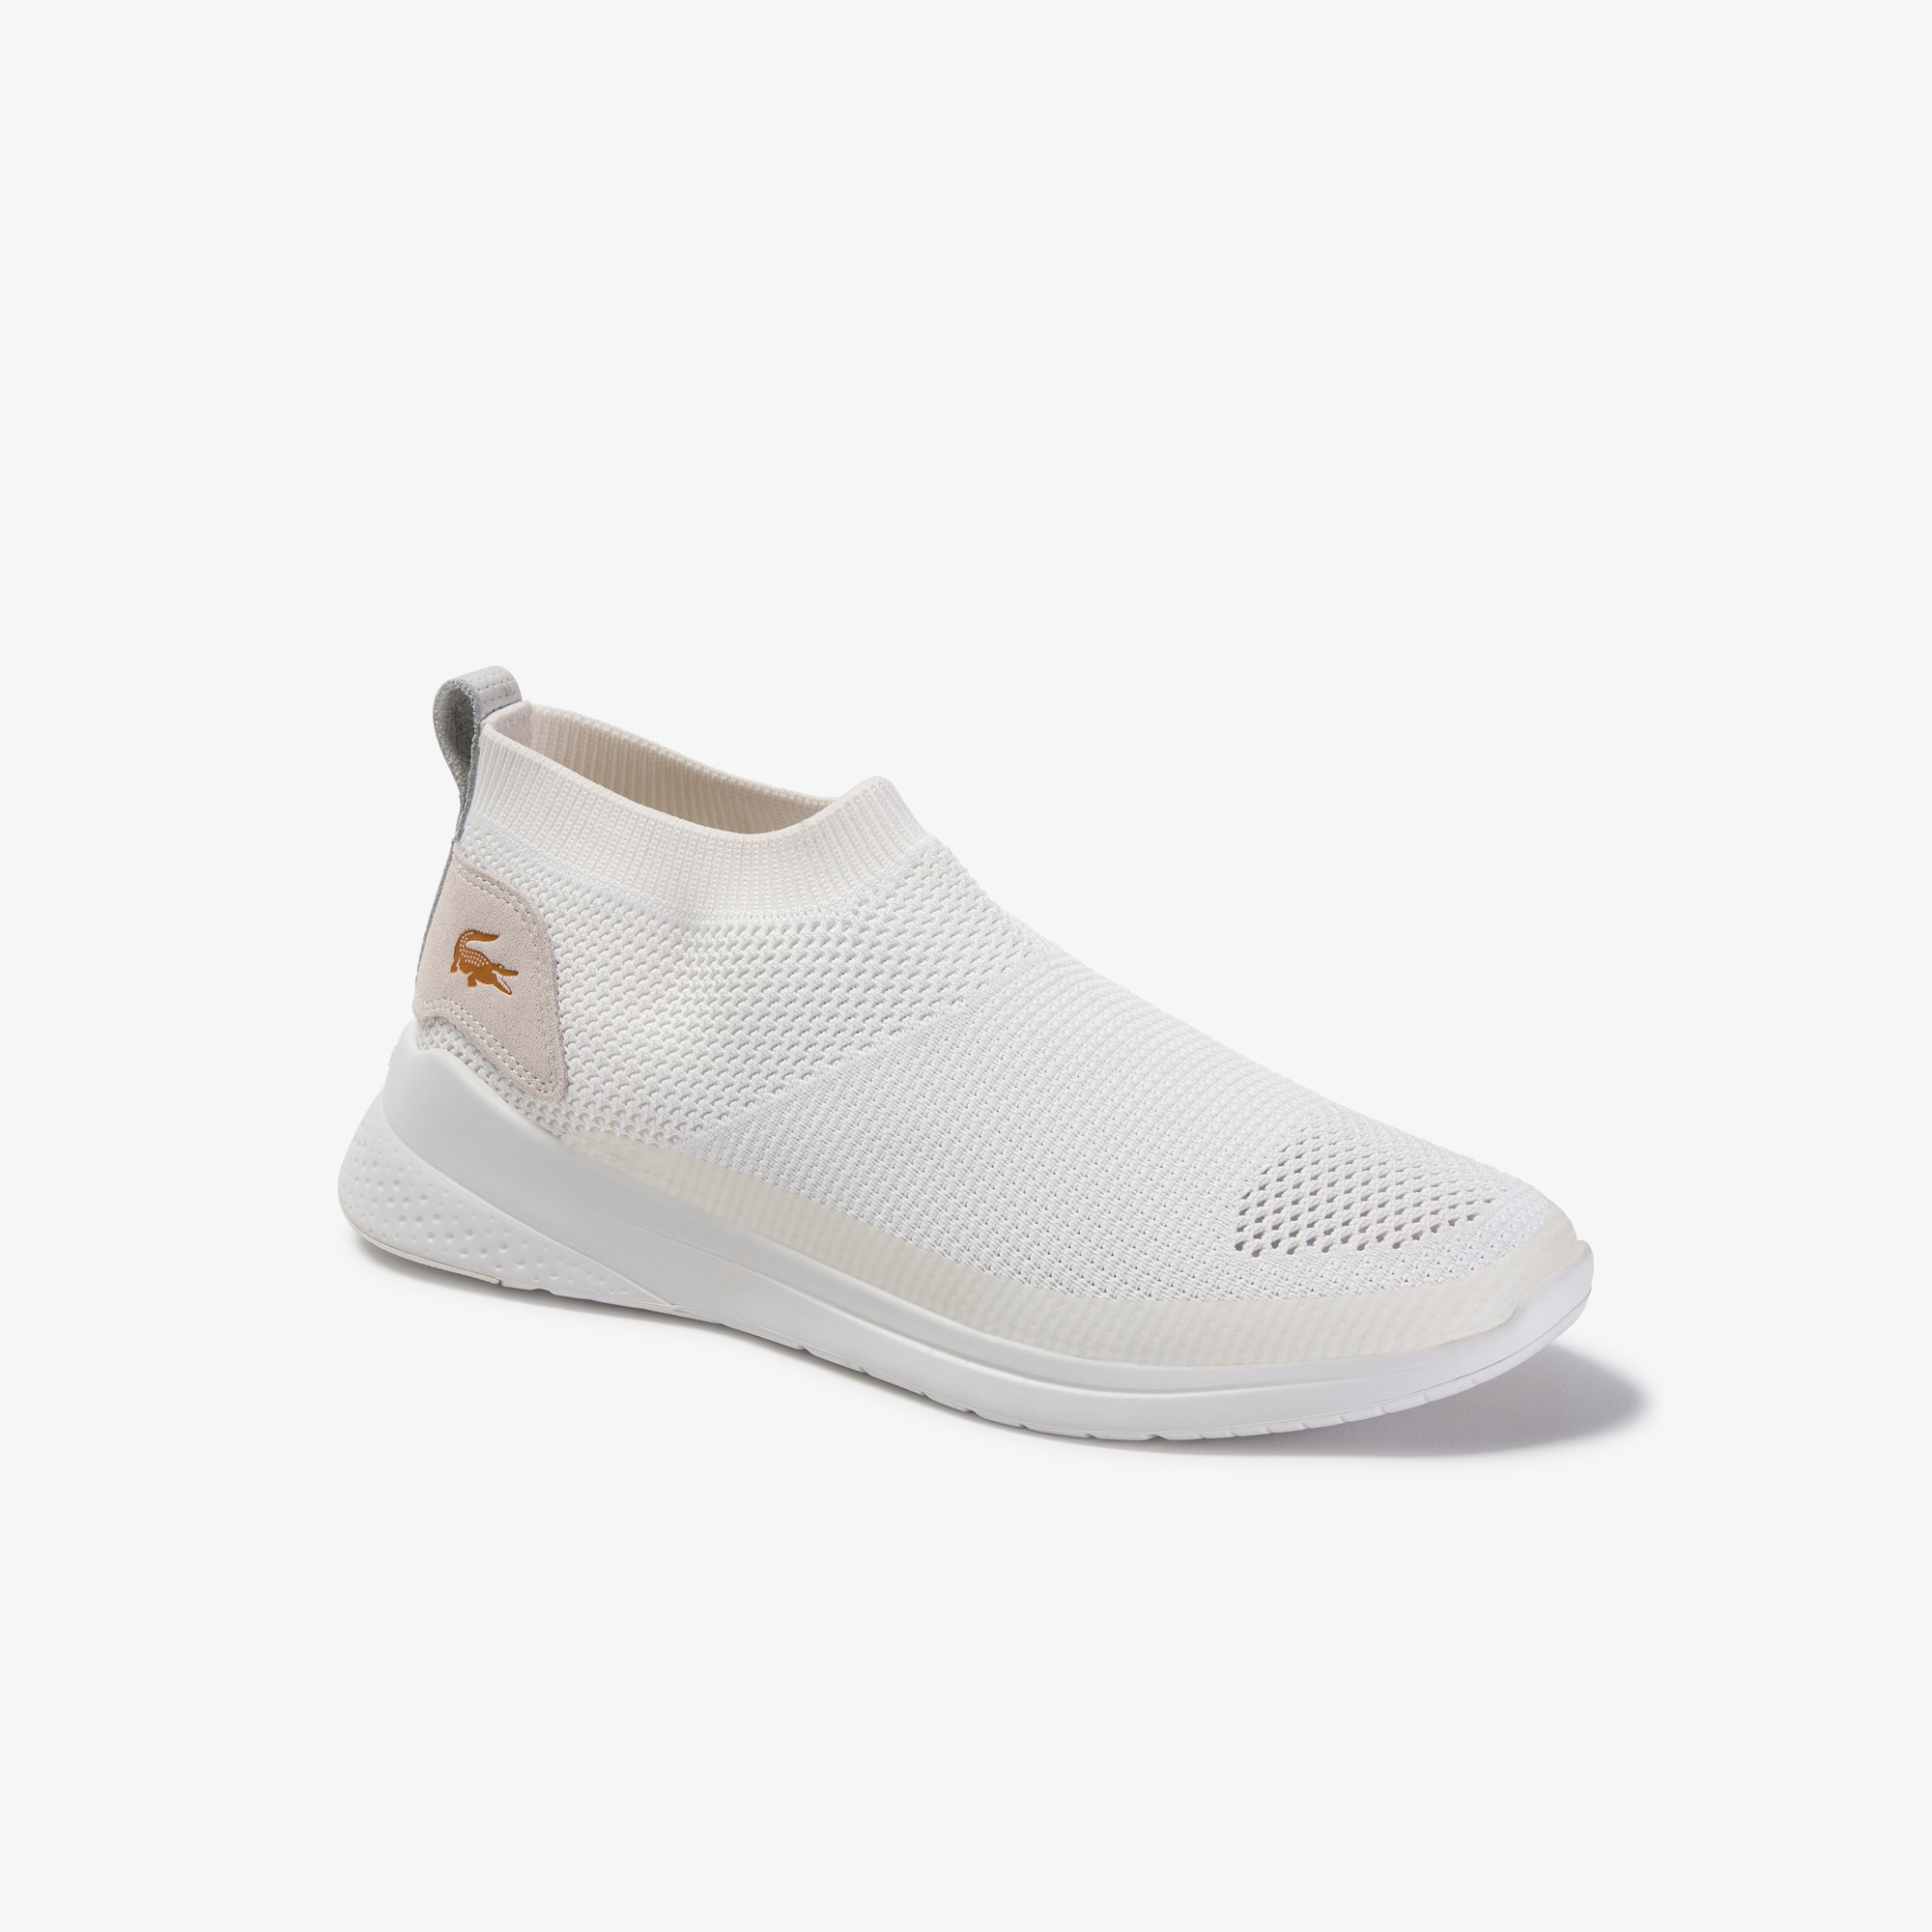 Lacoste shoes for men: Sneakers, Boots